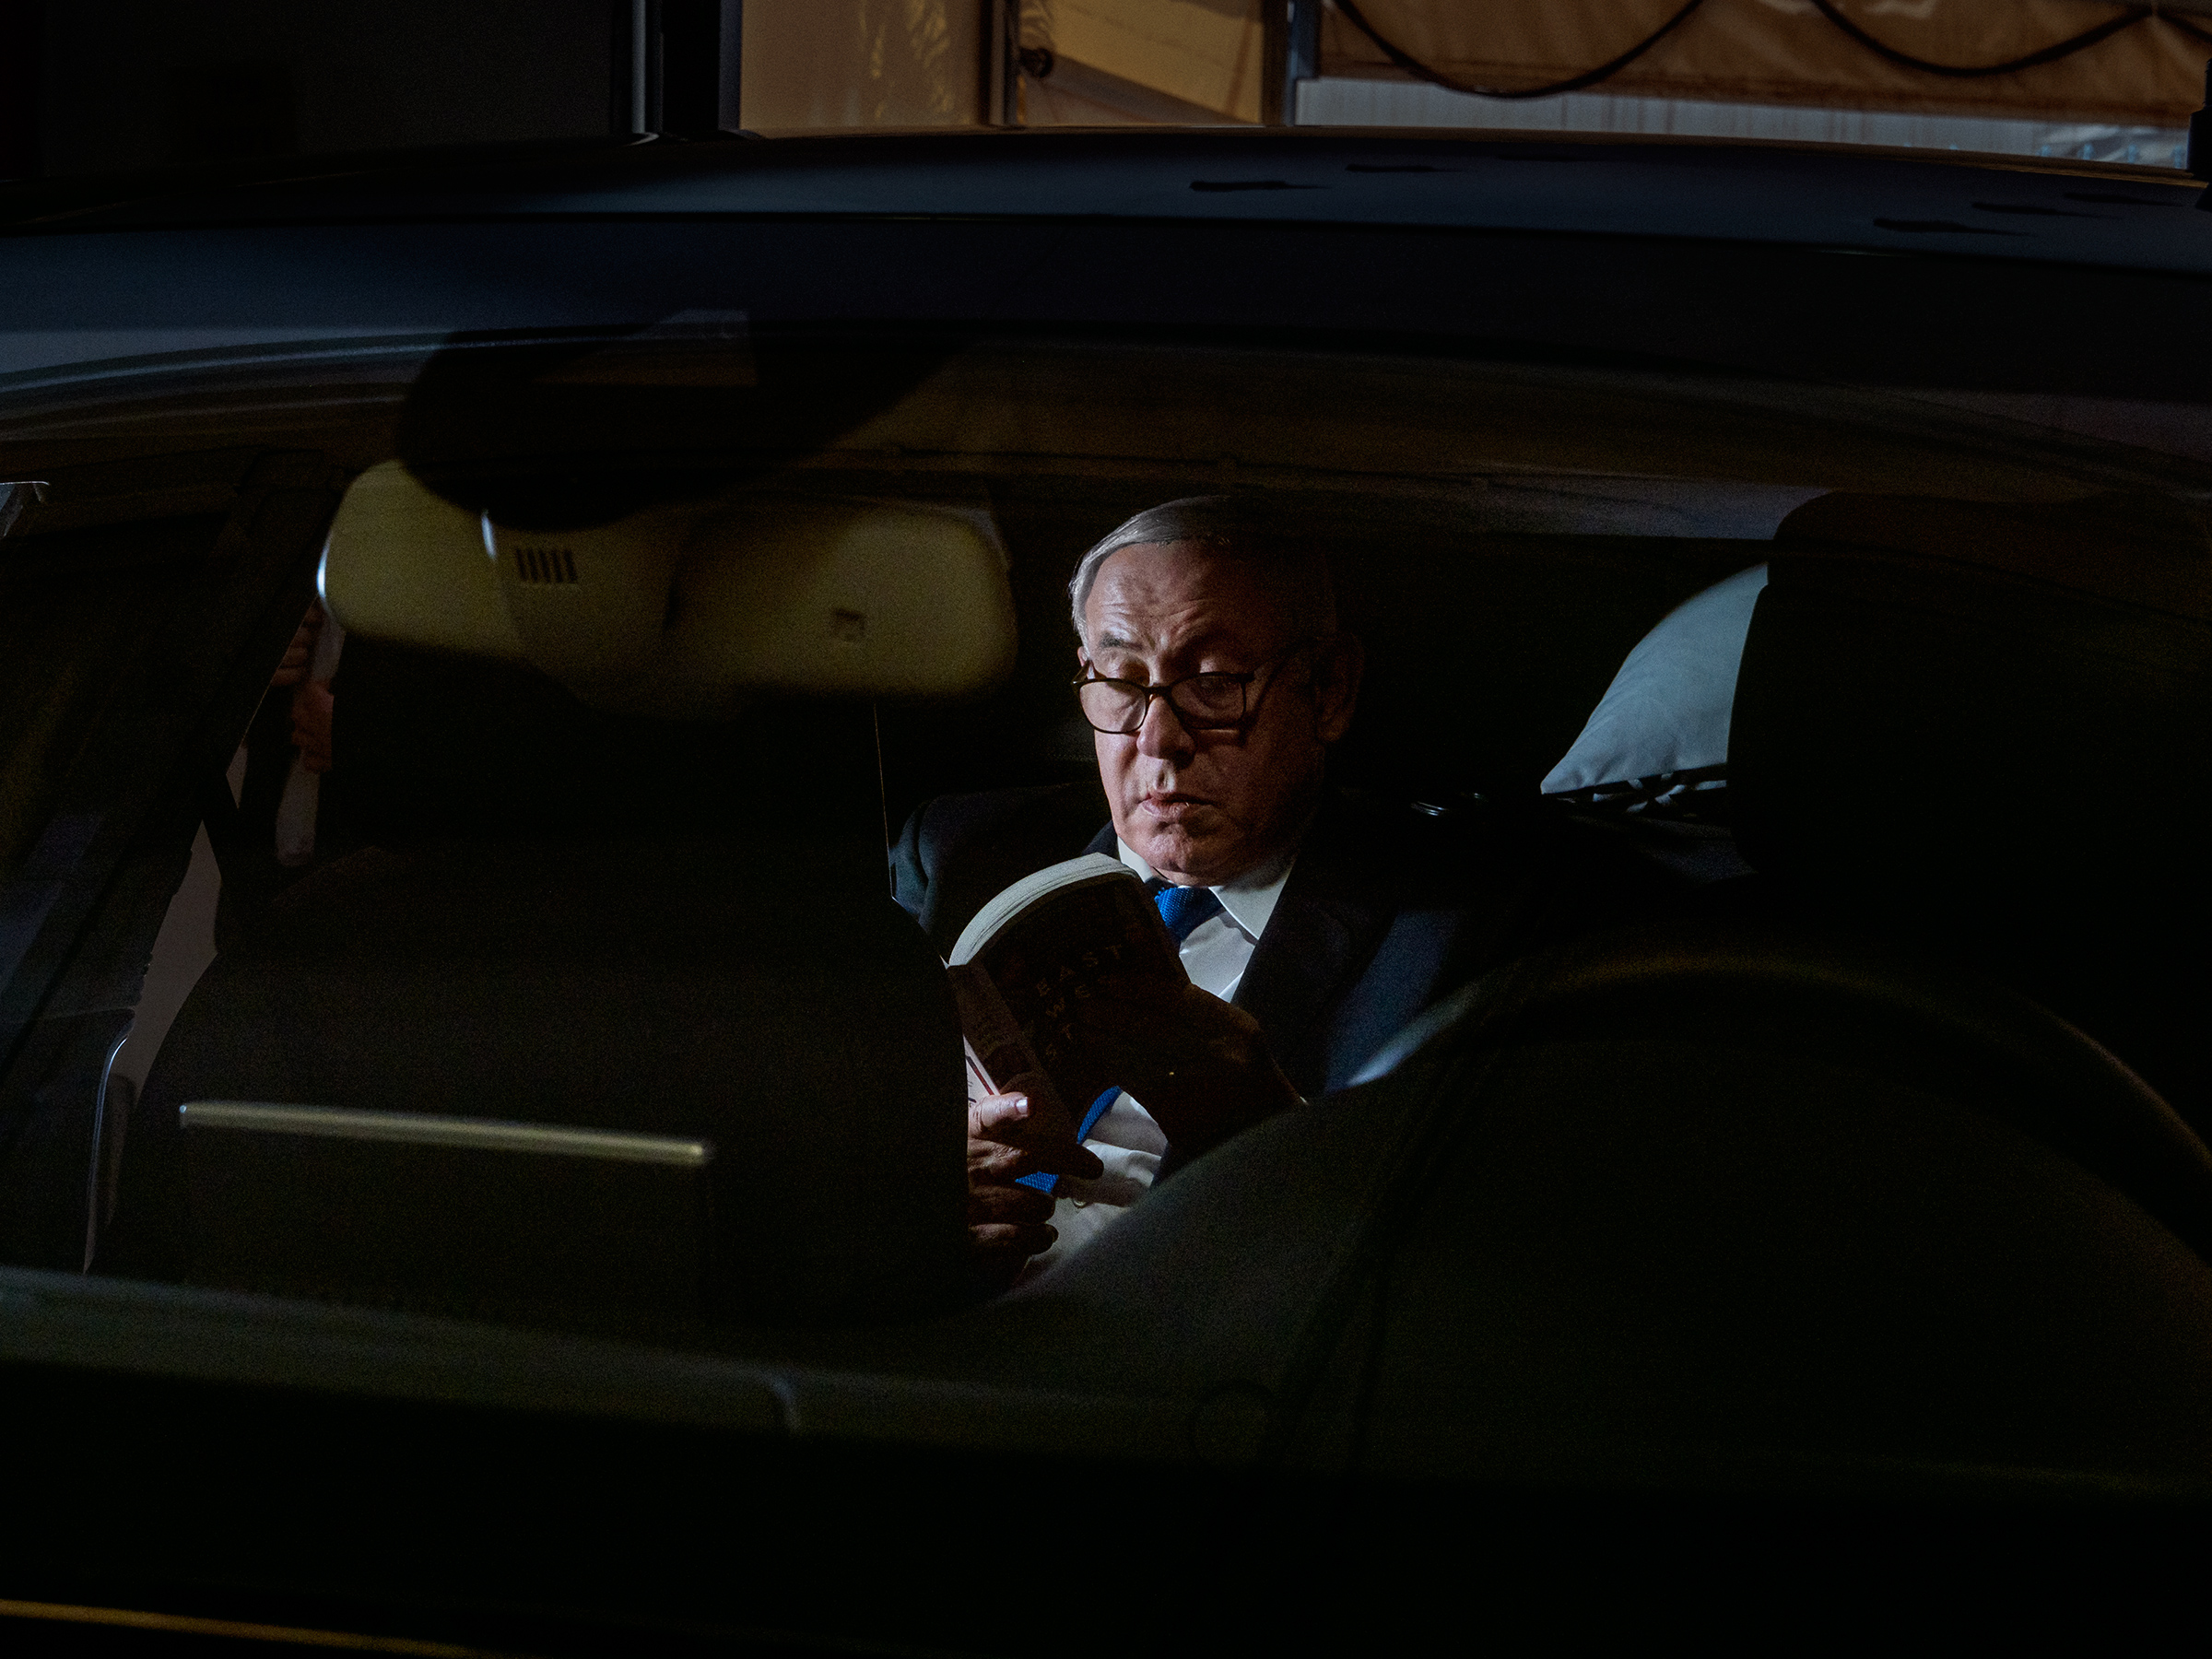 Netanyahu reads inside his car in Jerusalem on June 25.